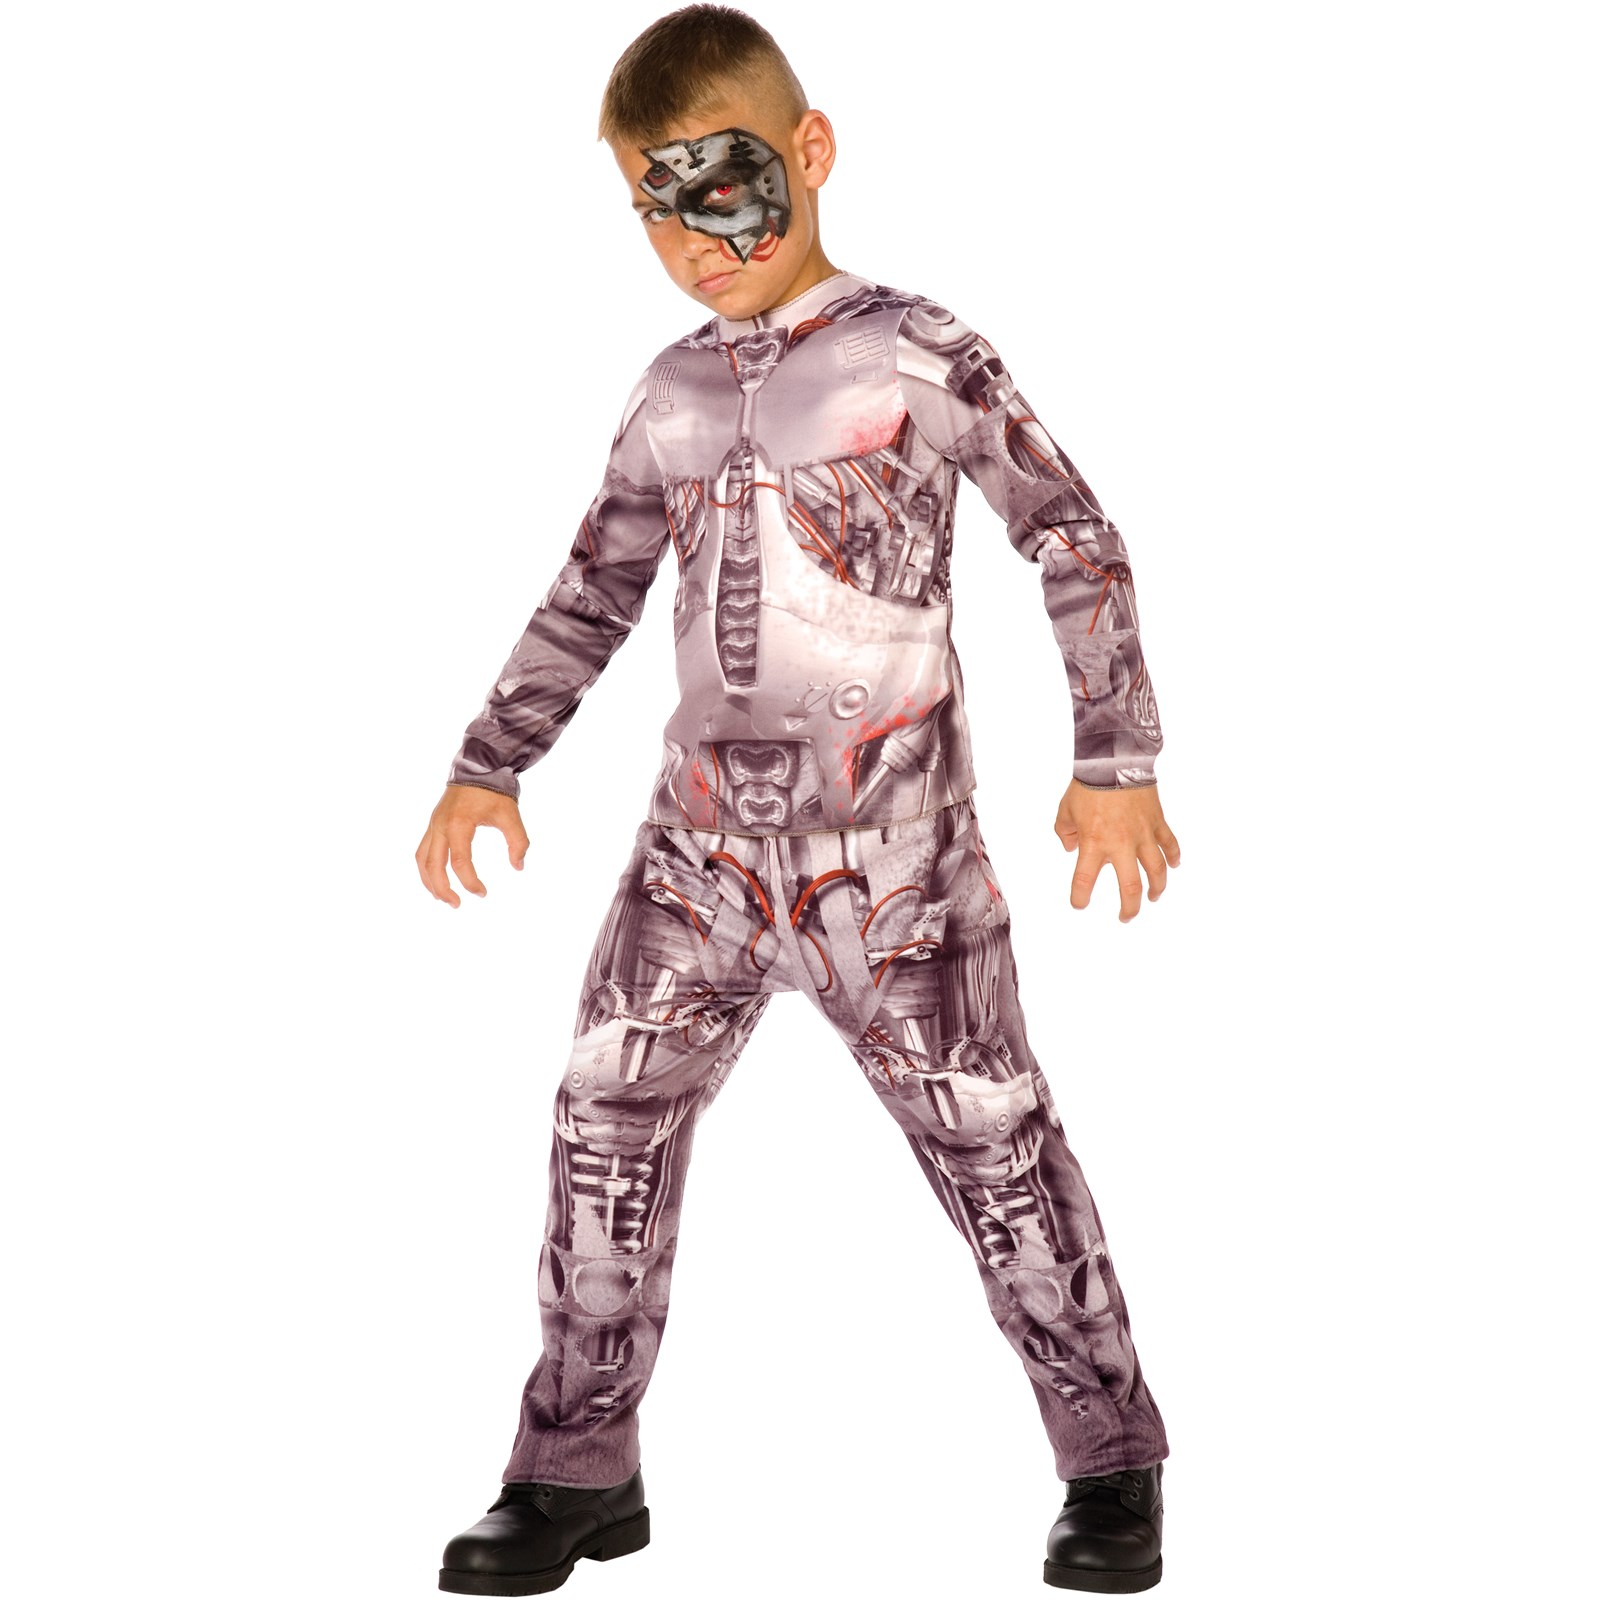 Cyborg Child Costume | BuyCostumes.com